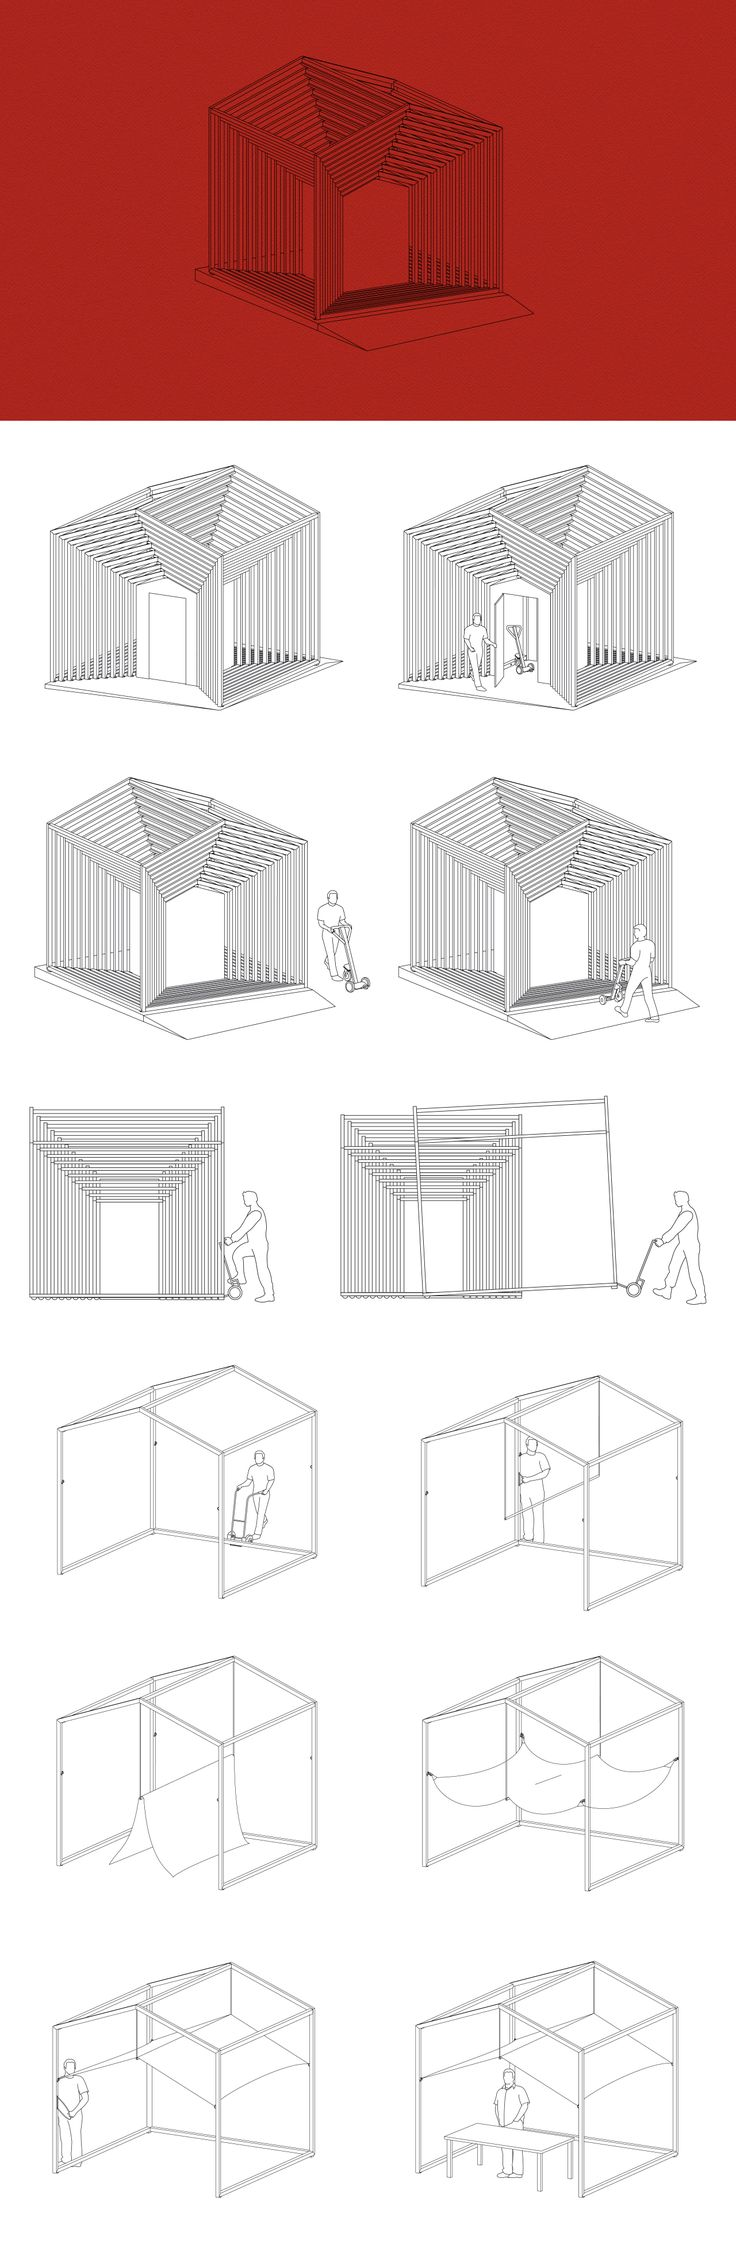 17 best ideas about le cube on pinterest meuble cube for Meuble cube modulable